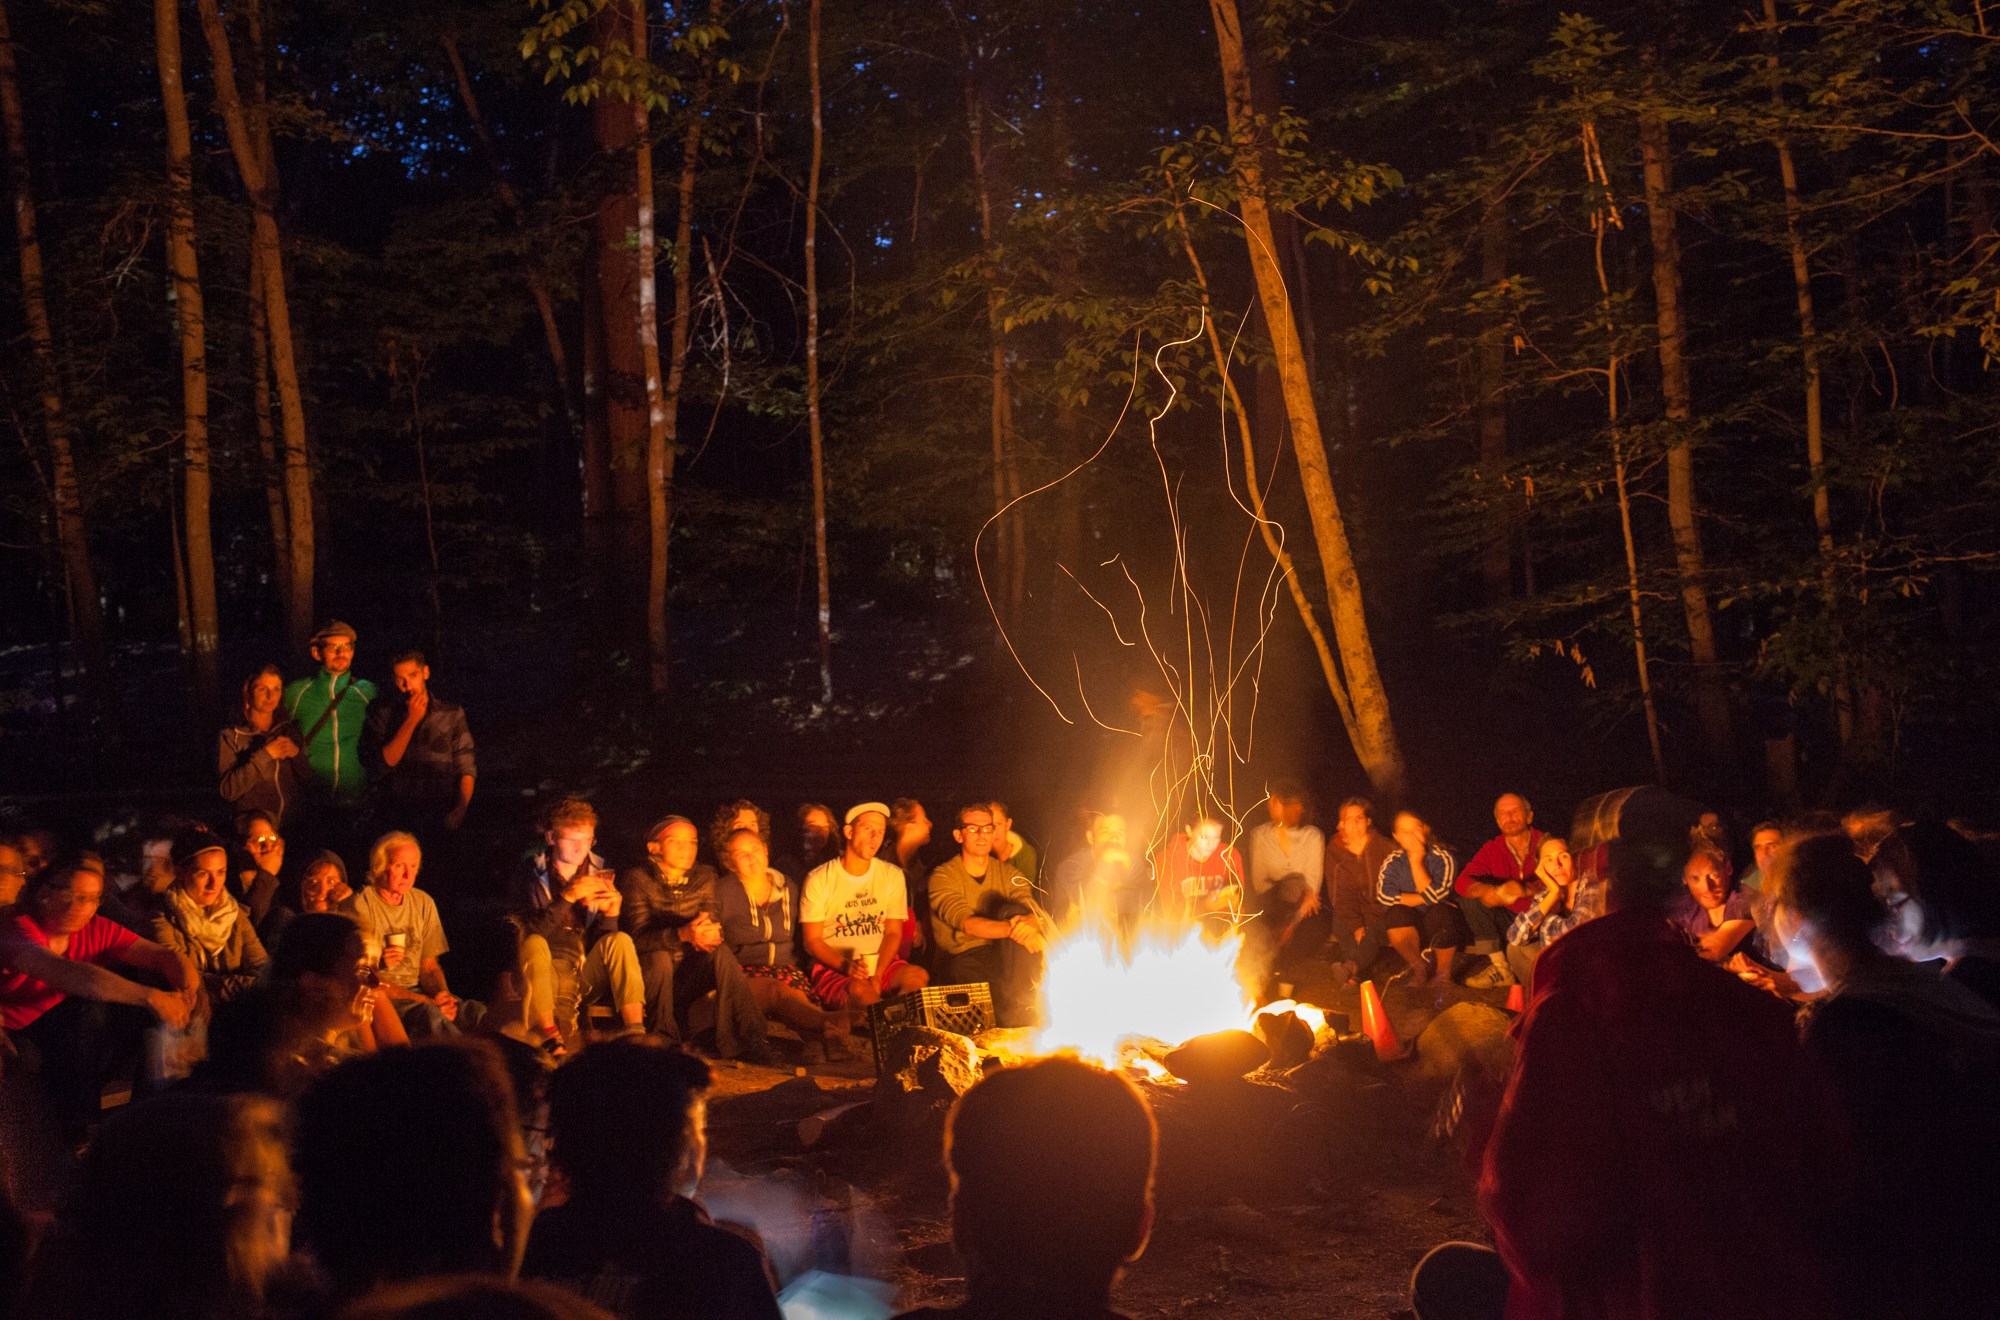 Singing classics at the campfire sing-along